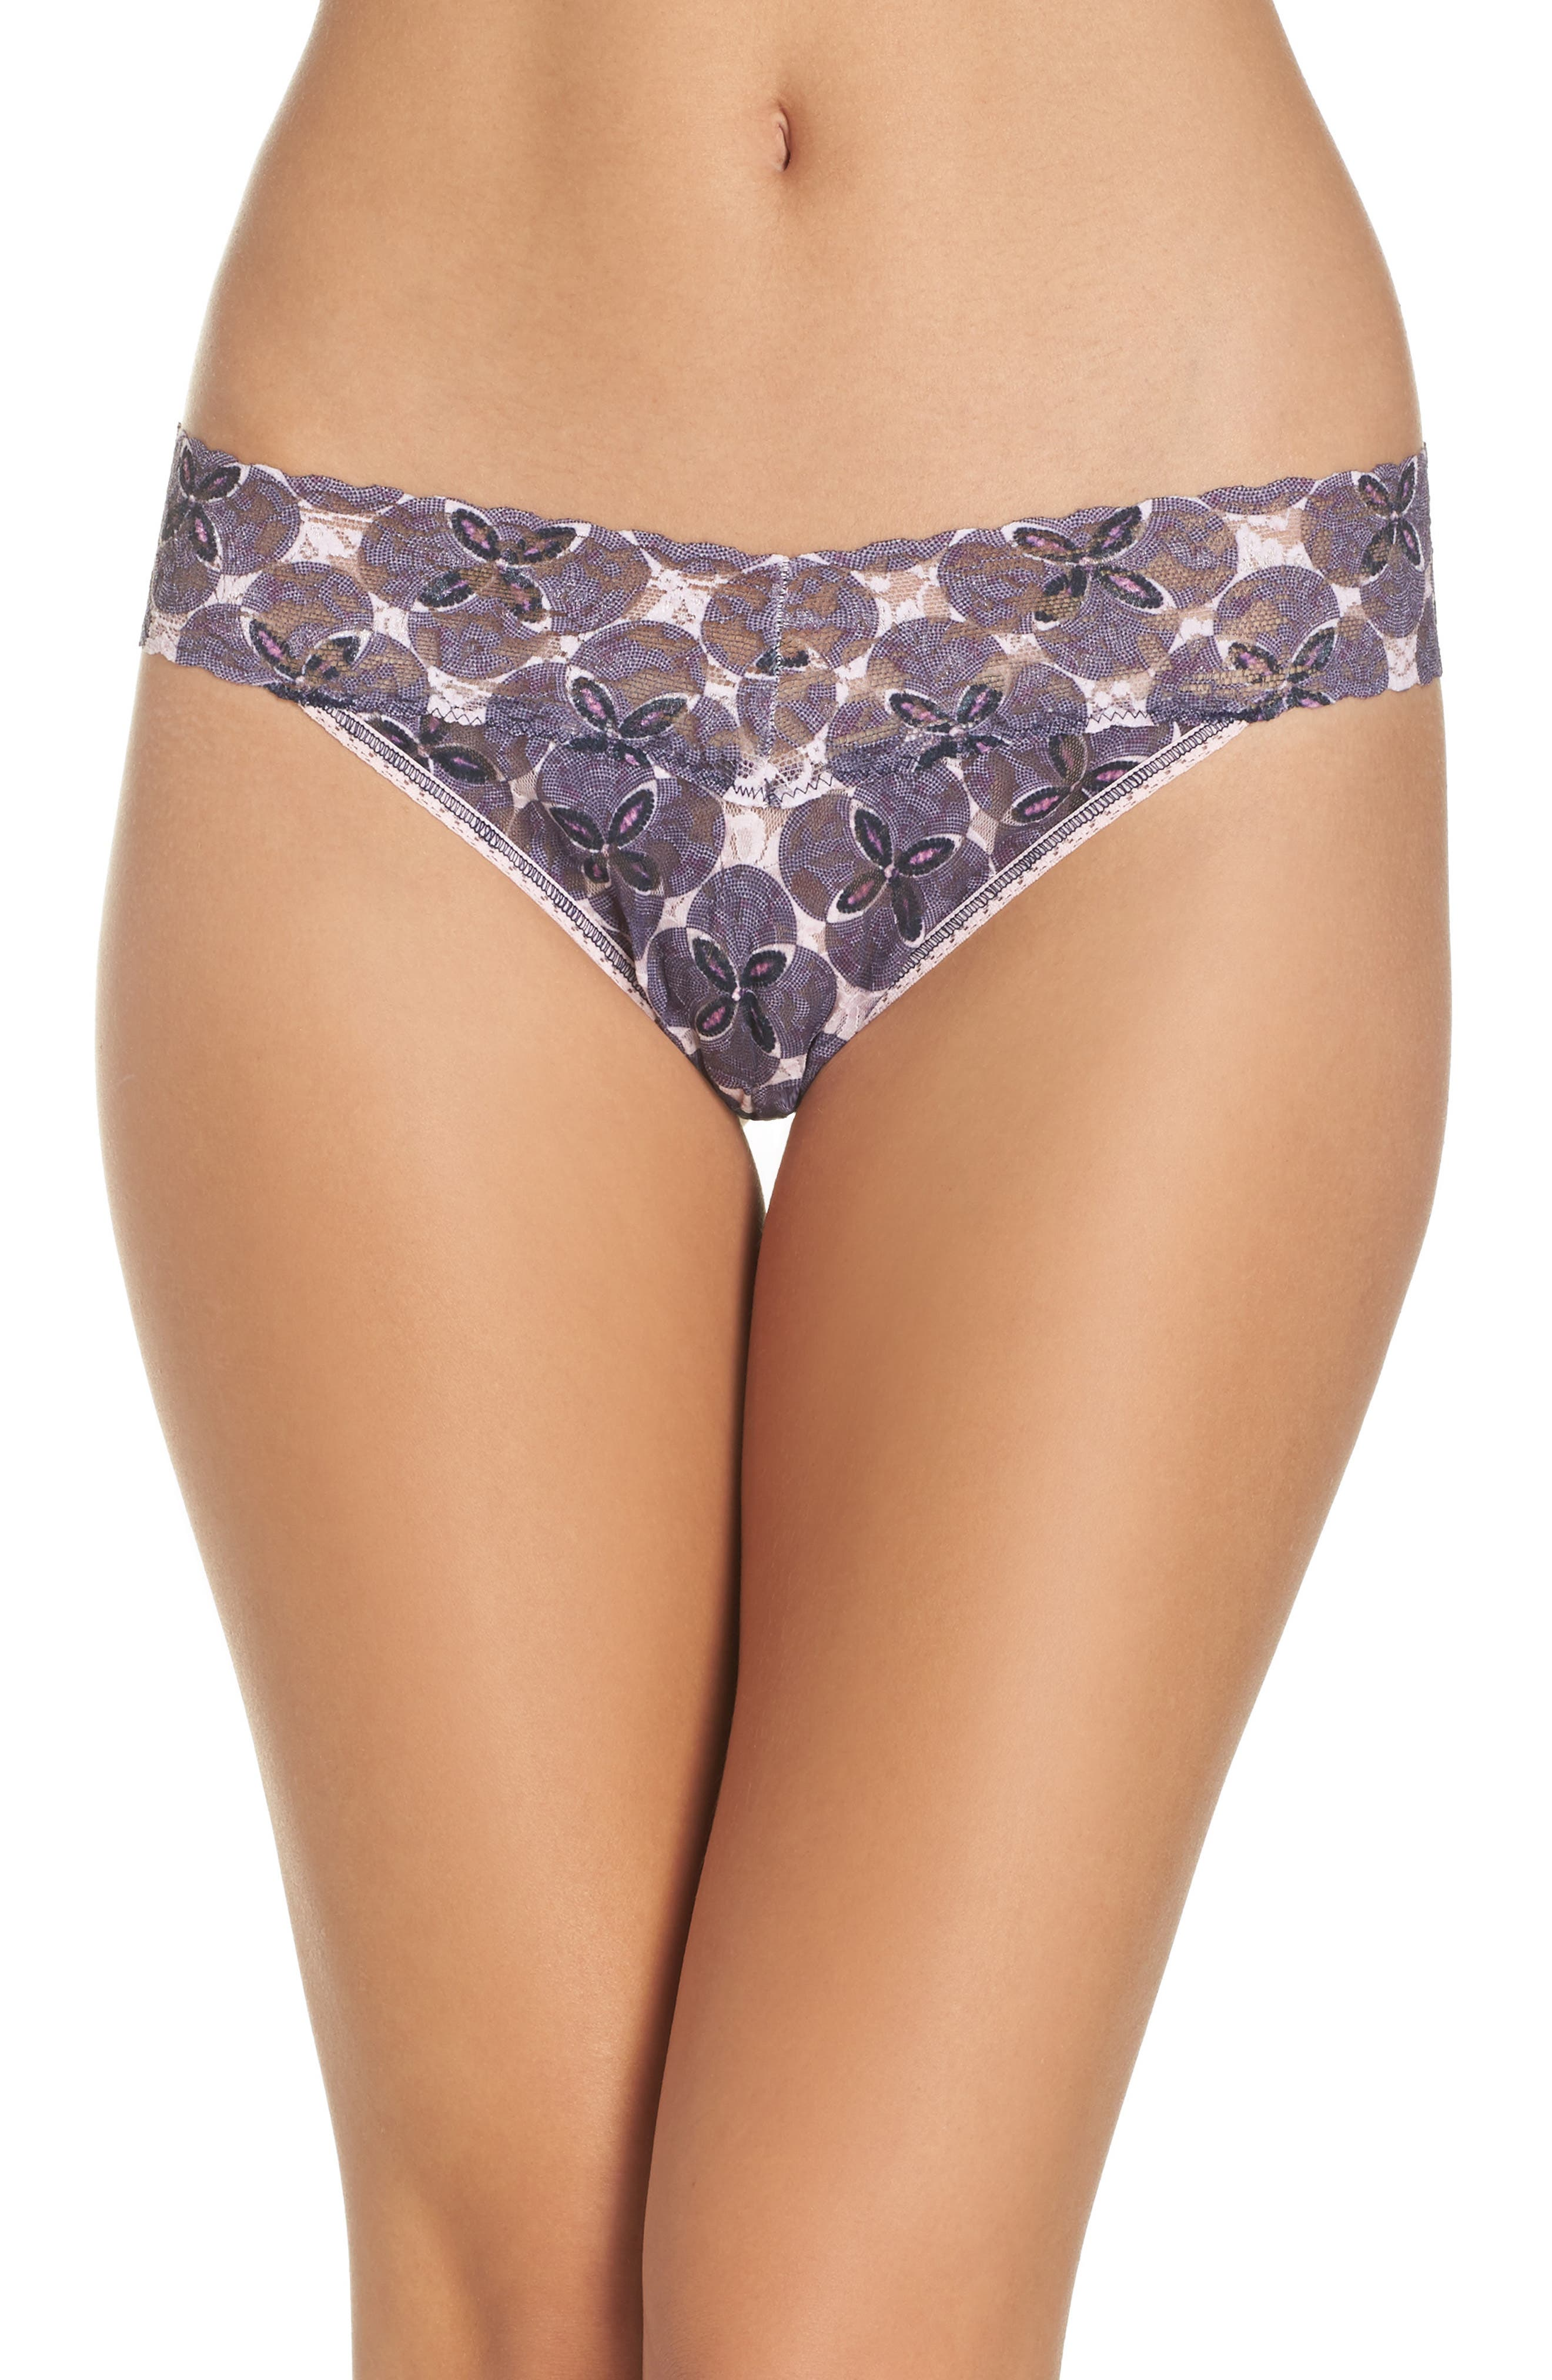 Pinwheel Original Rise Thong,                         Main,                         color, 021